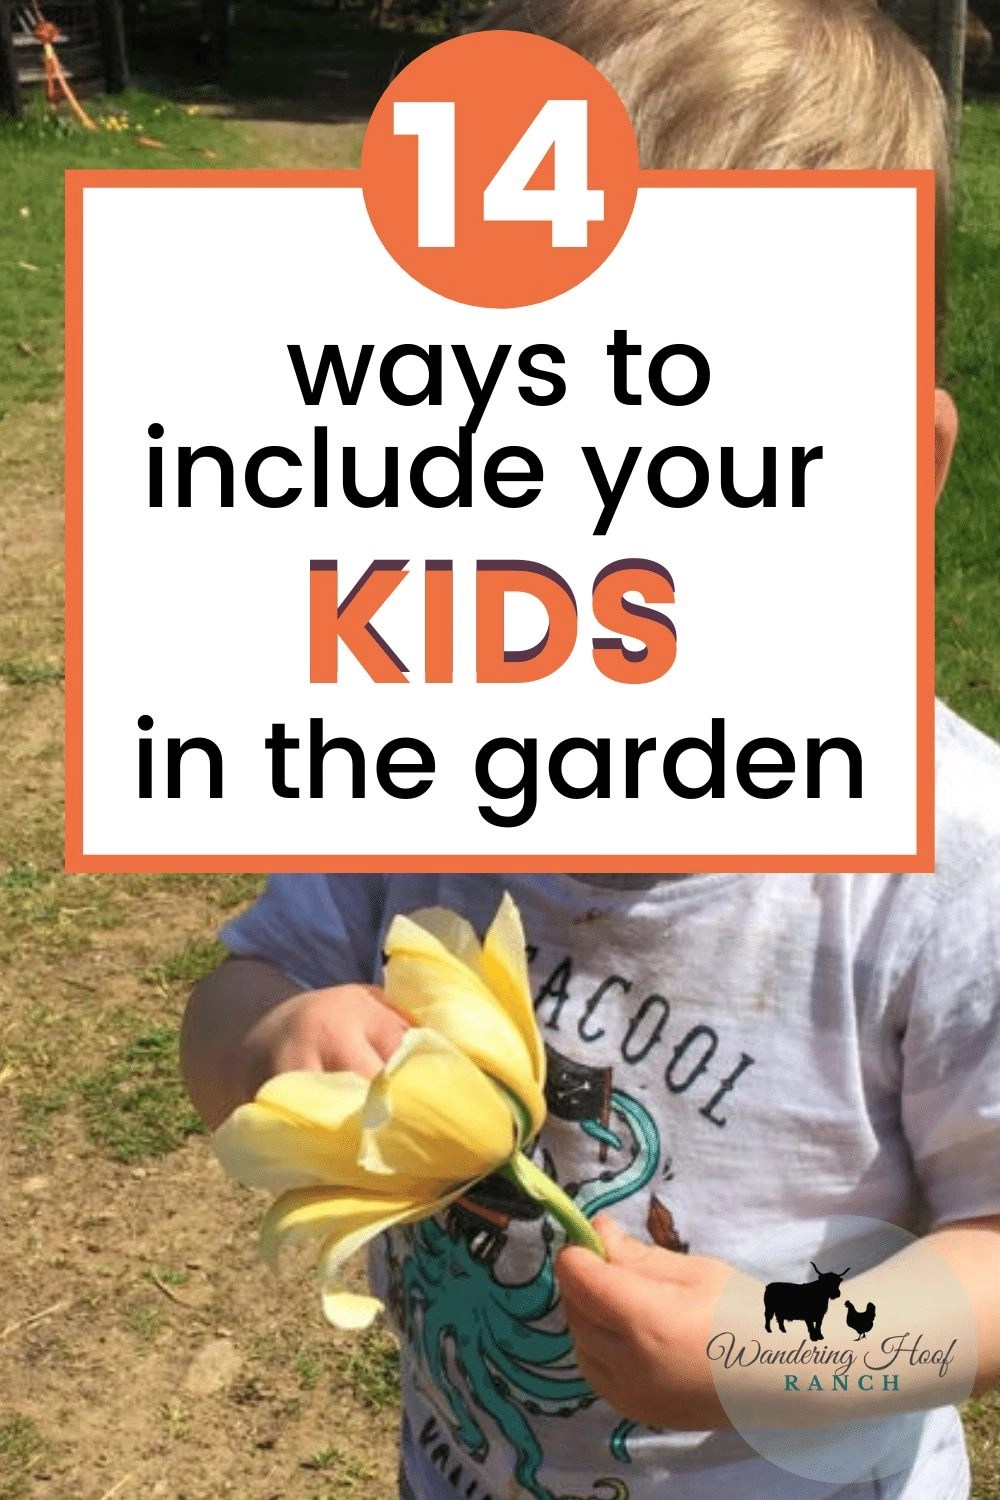 14 ways to include your kids in the garden